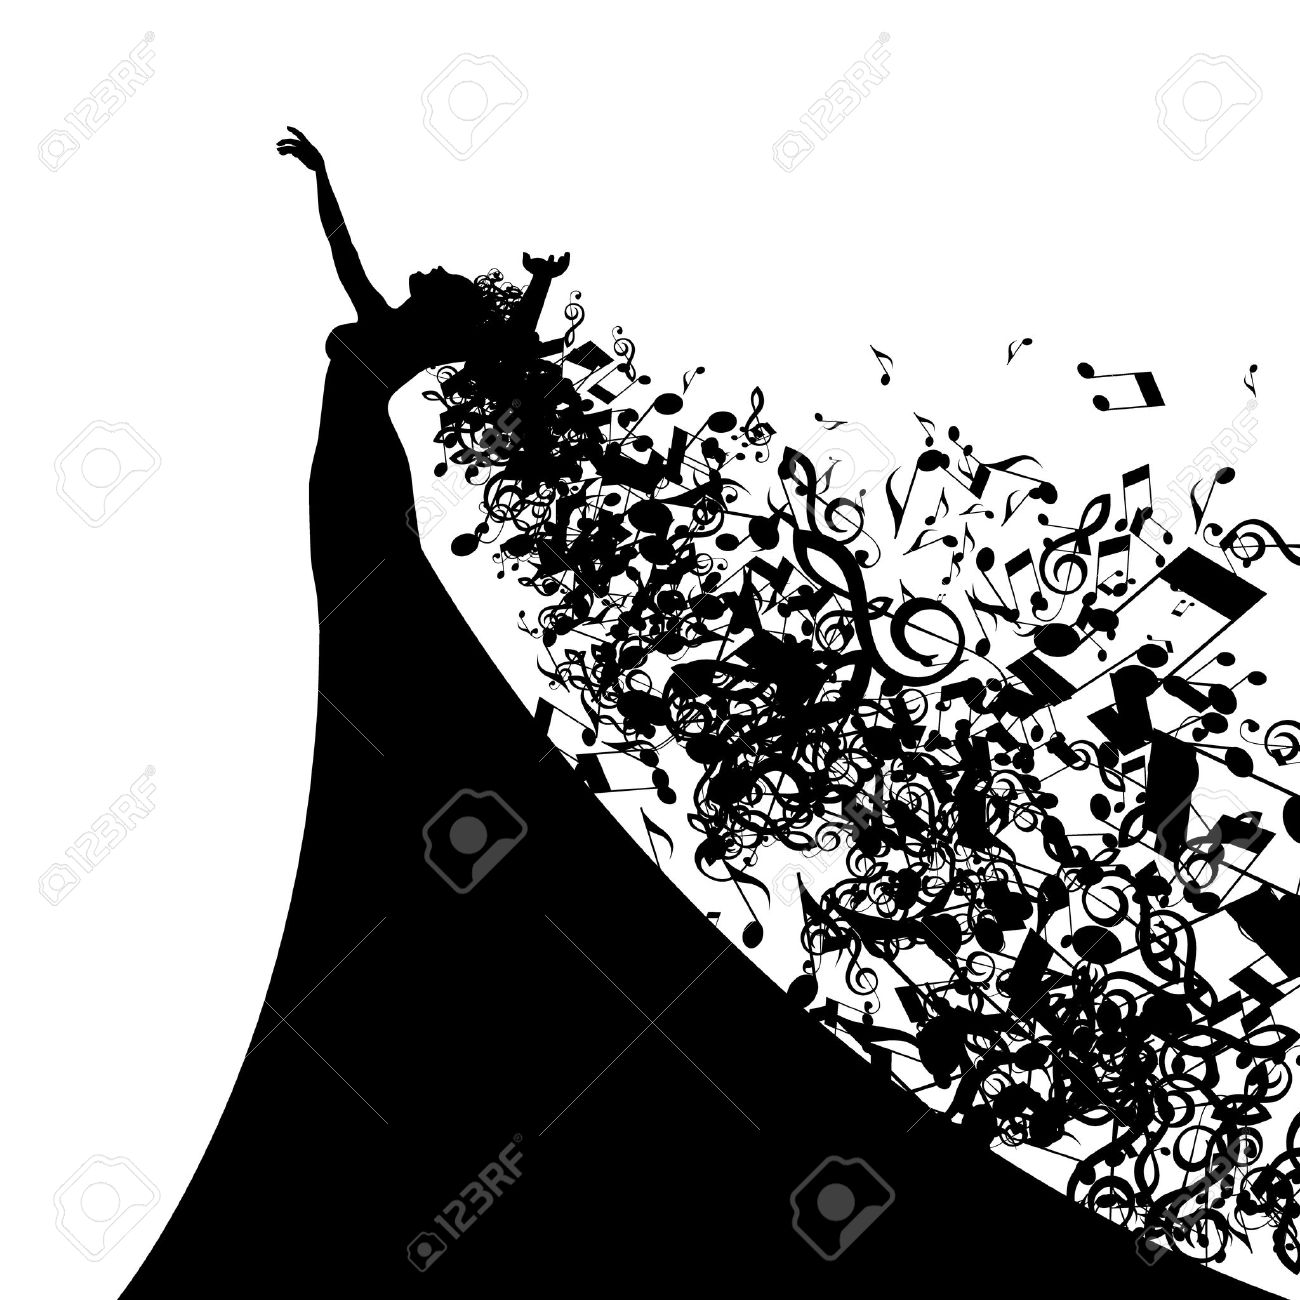 hight resolution of opera singer clipart black and white